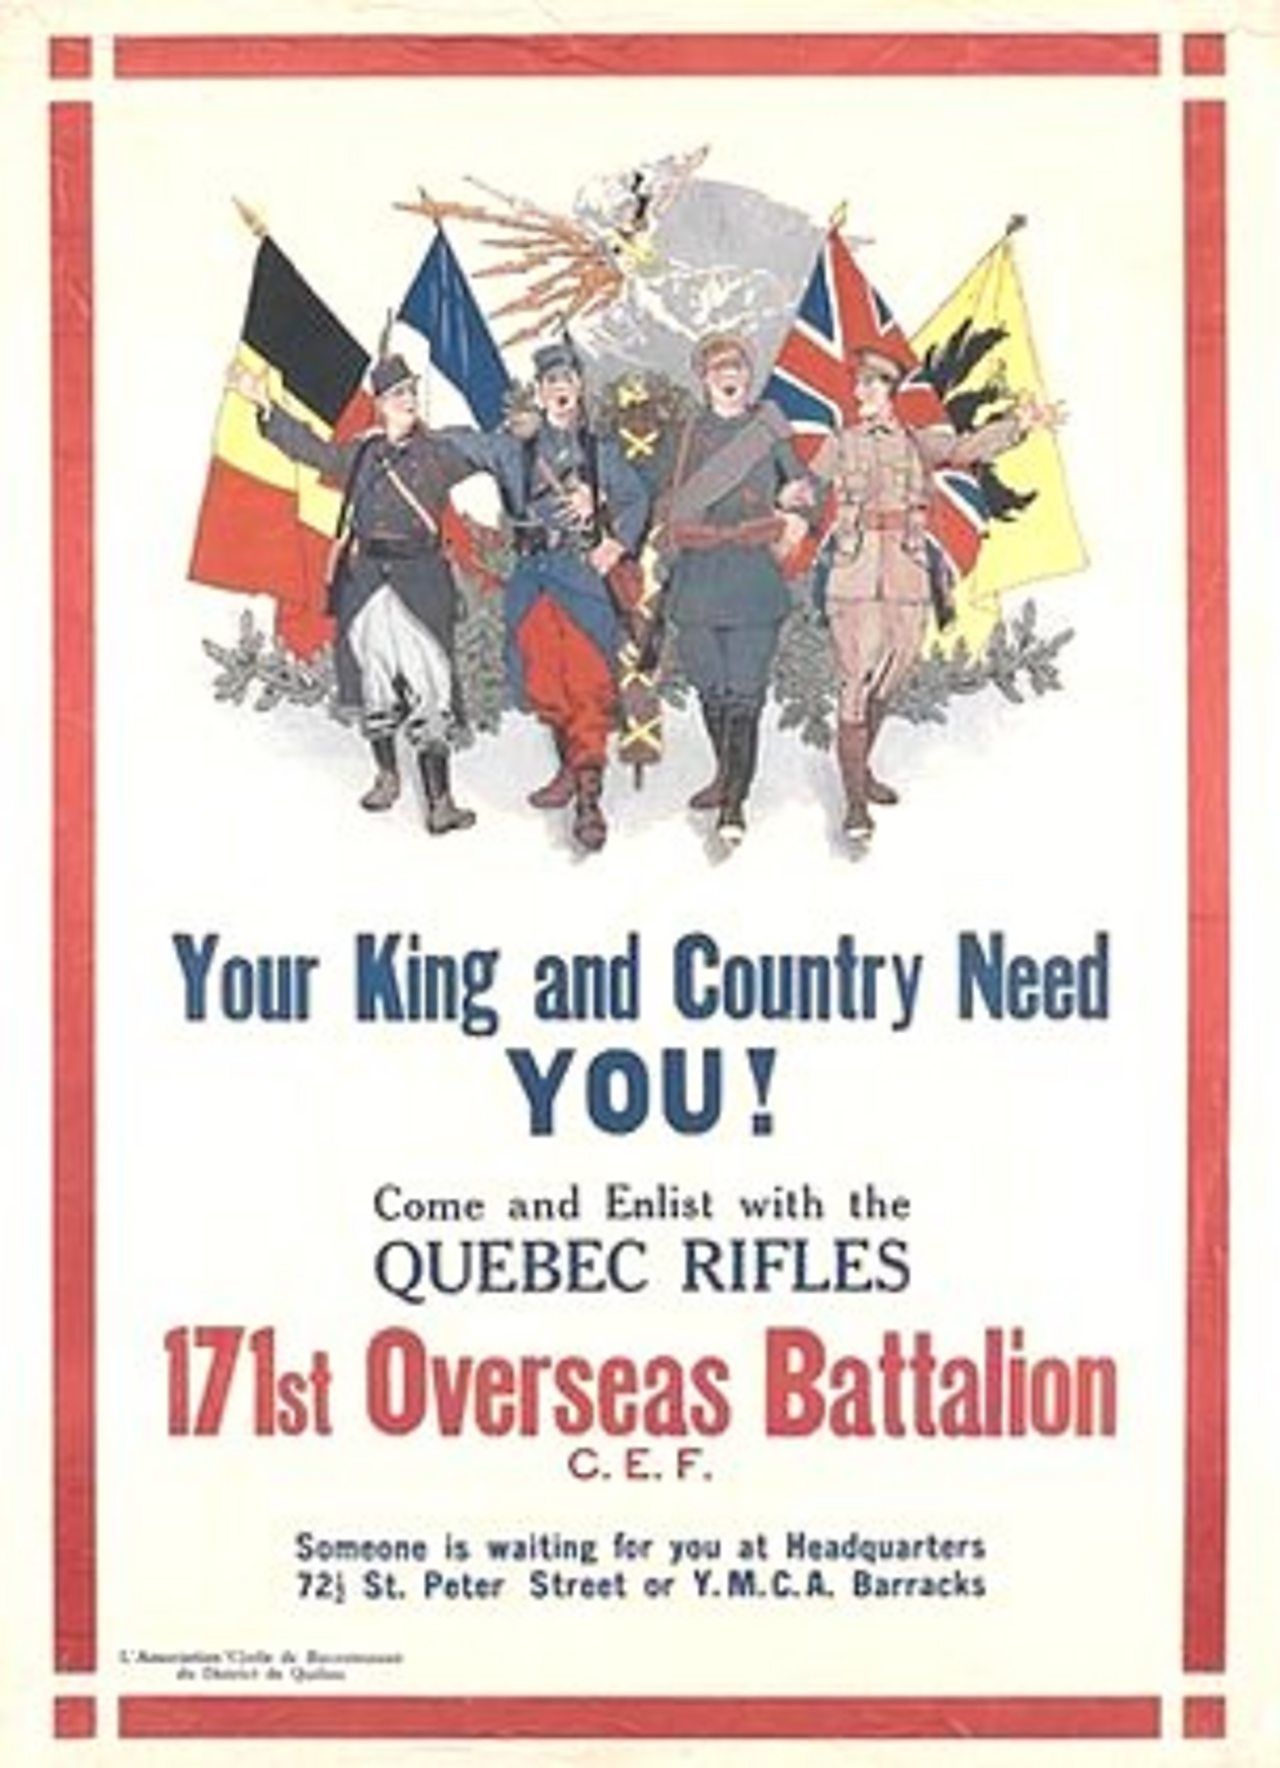 Canadian poster appealing for people to join the armed forces in World War One